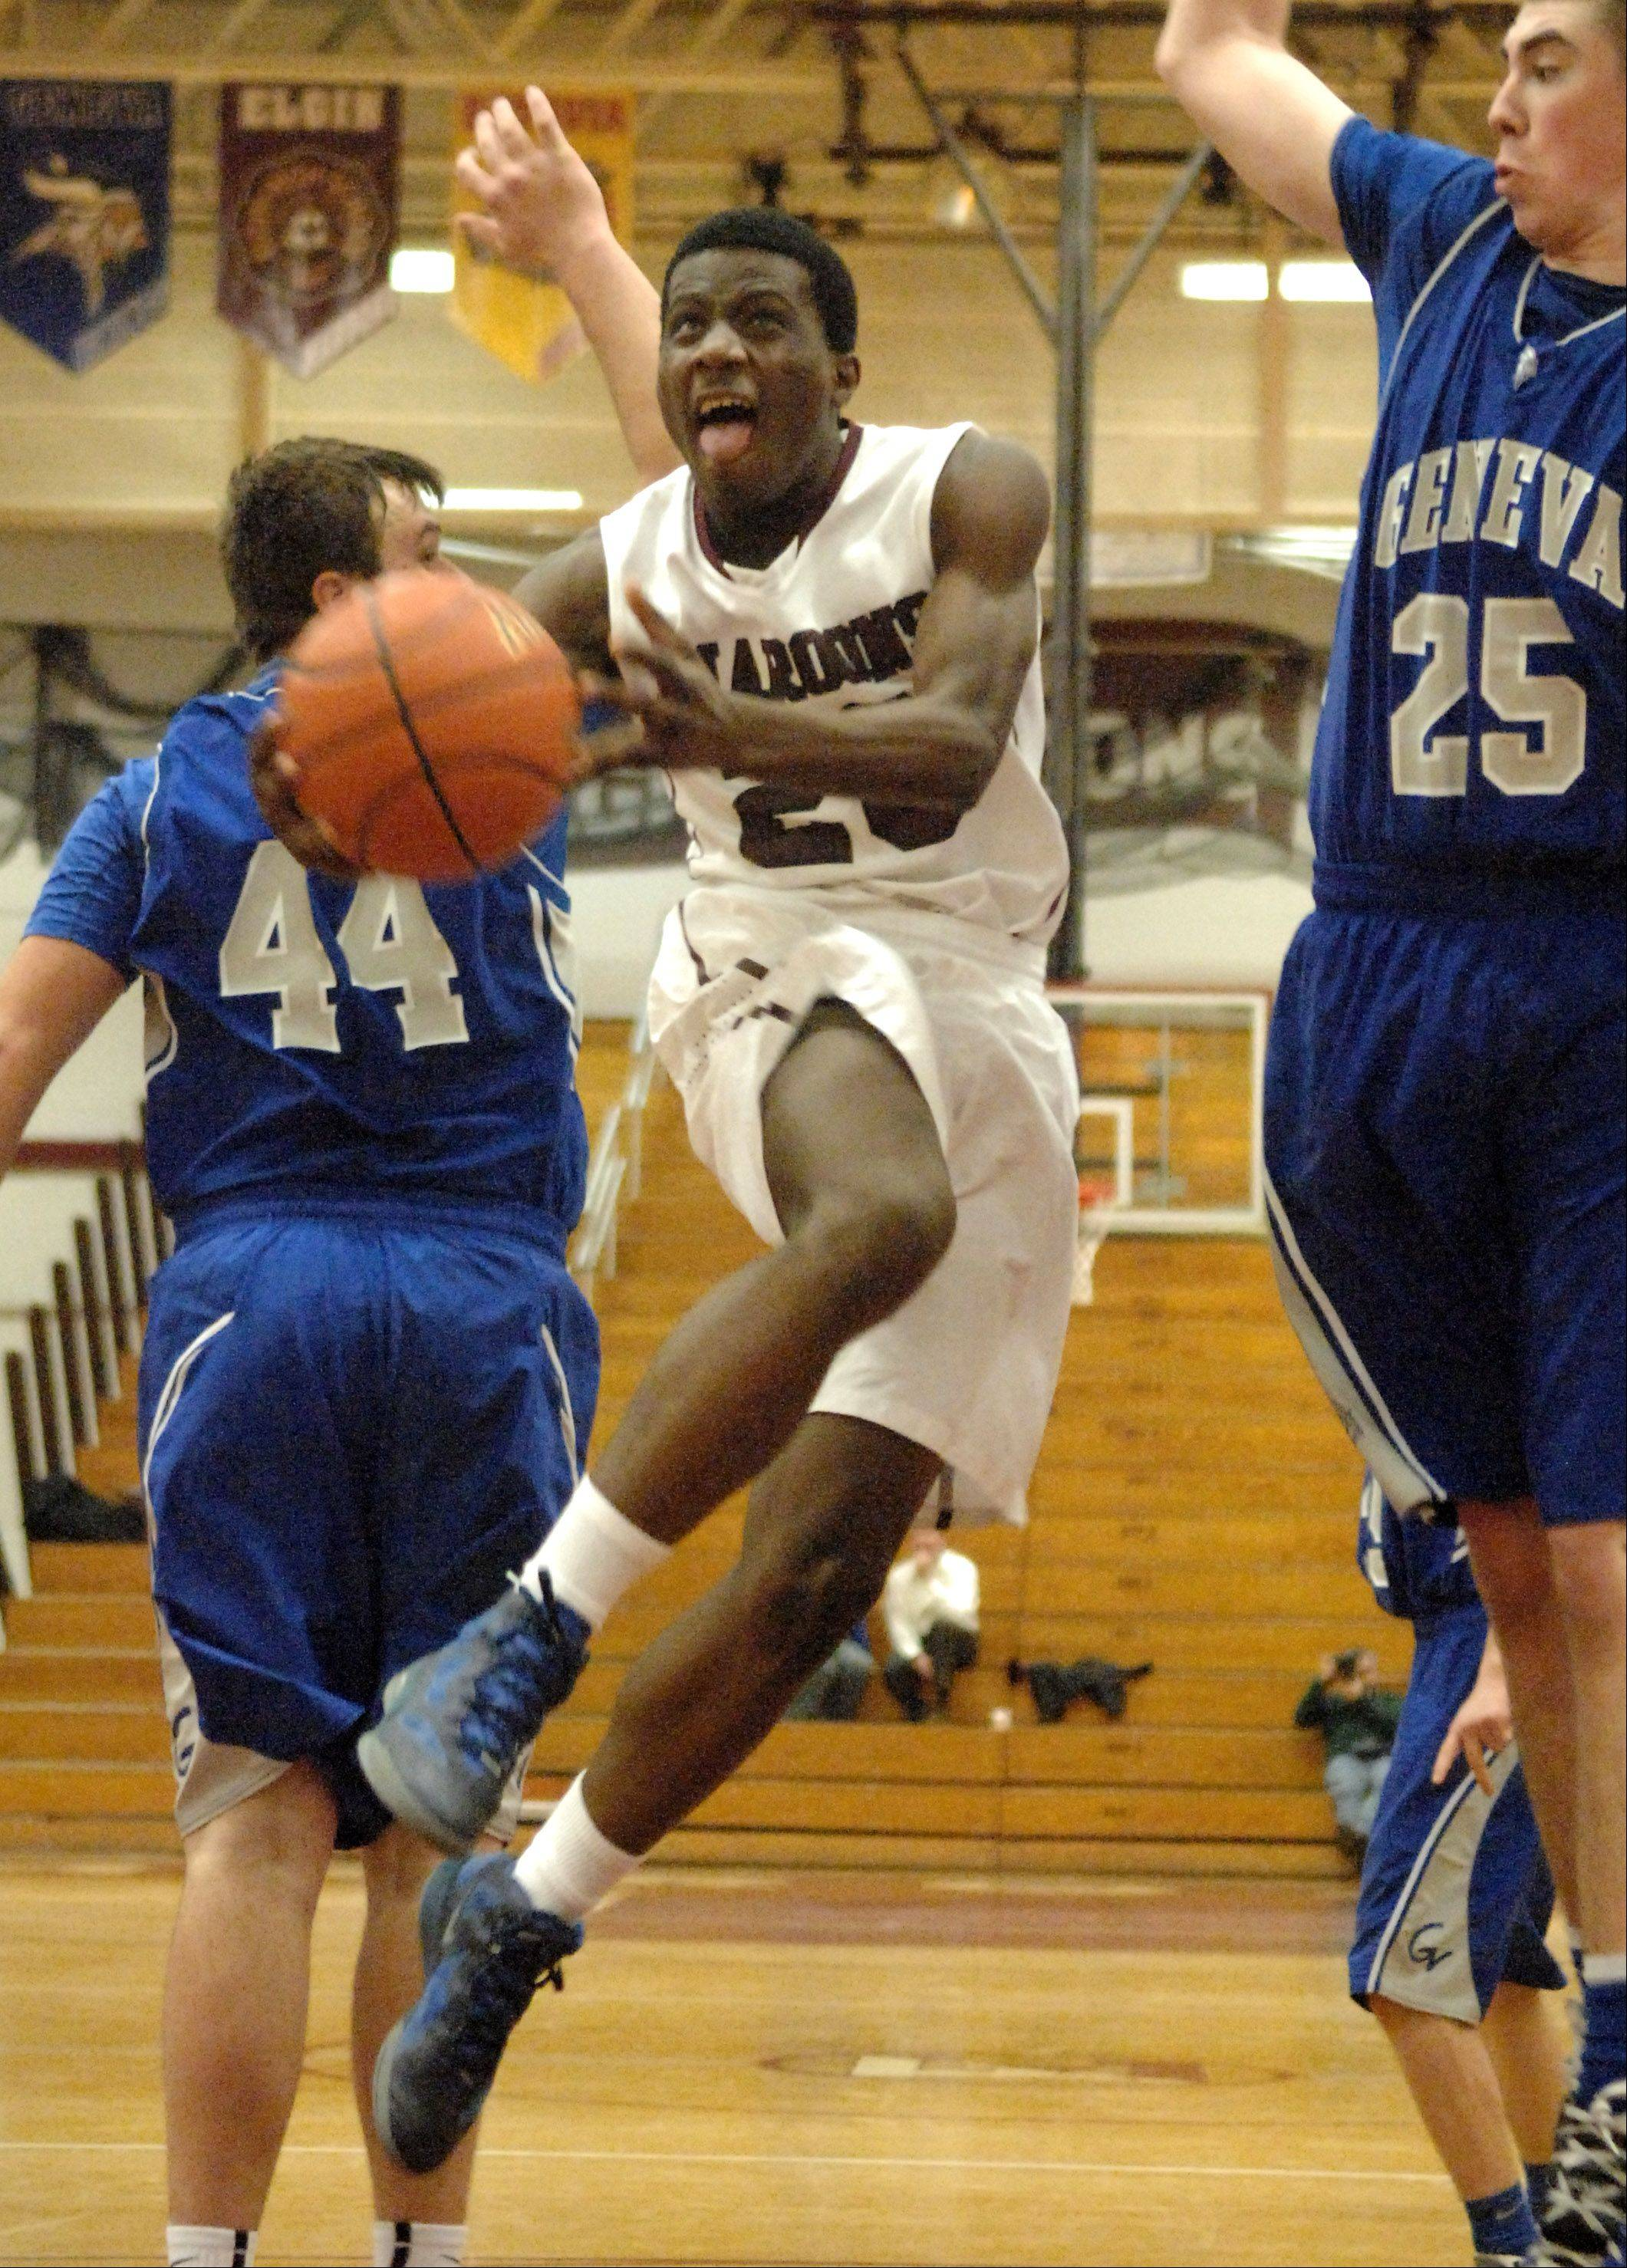 Elgin's Isaiah Butler drives to the basket between two Geneva defenders during Thursday's game in Elgin.